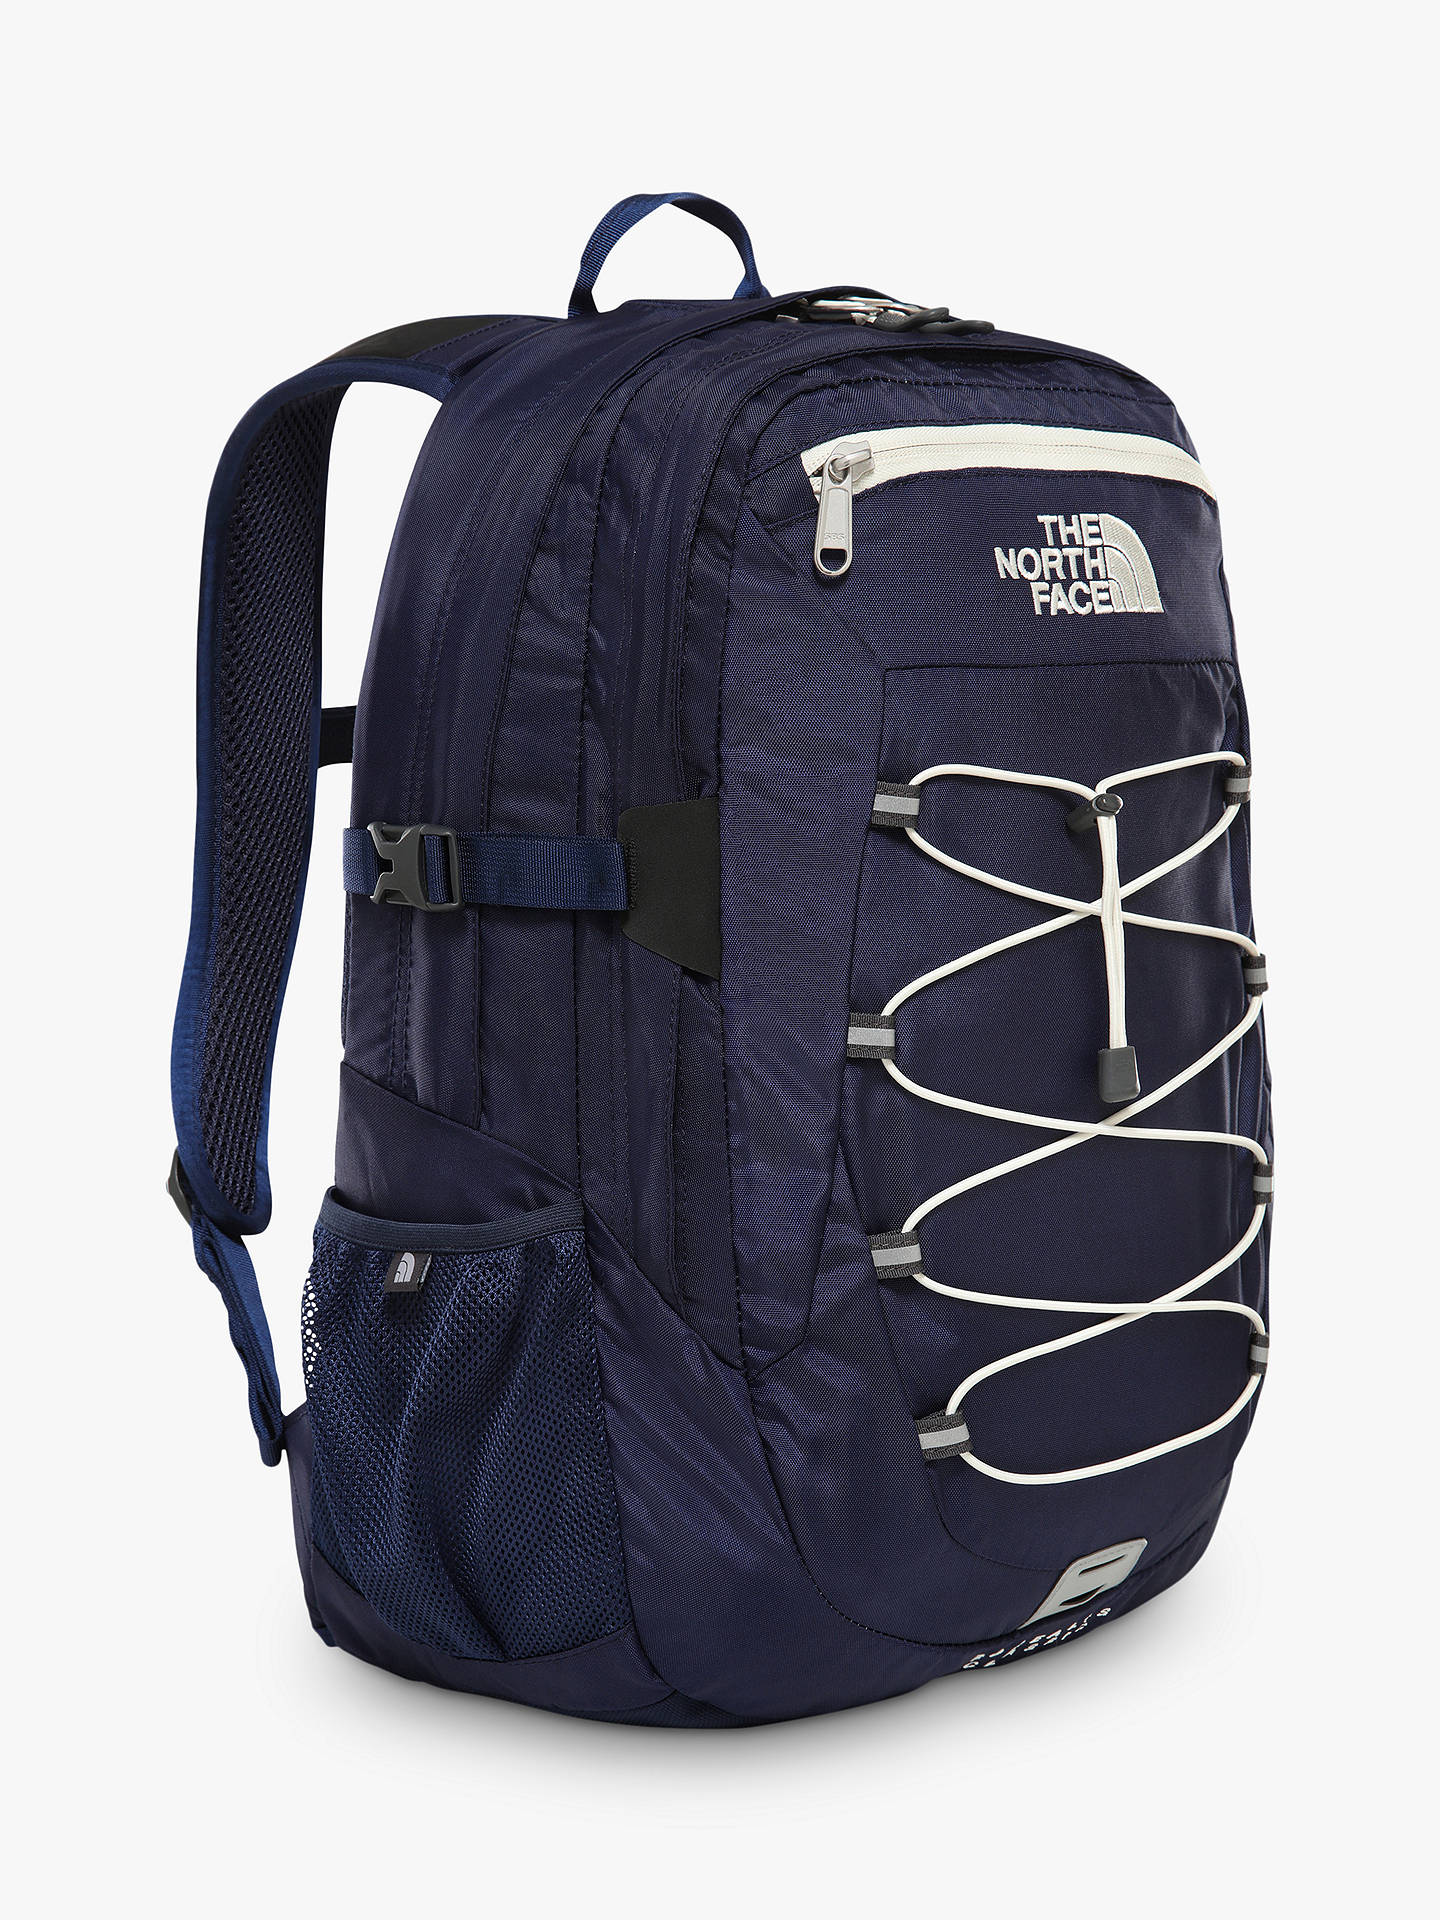 fa083bf6a The North Face Borealis Classic Backpack, Montague Blue